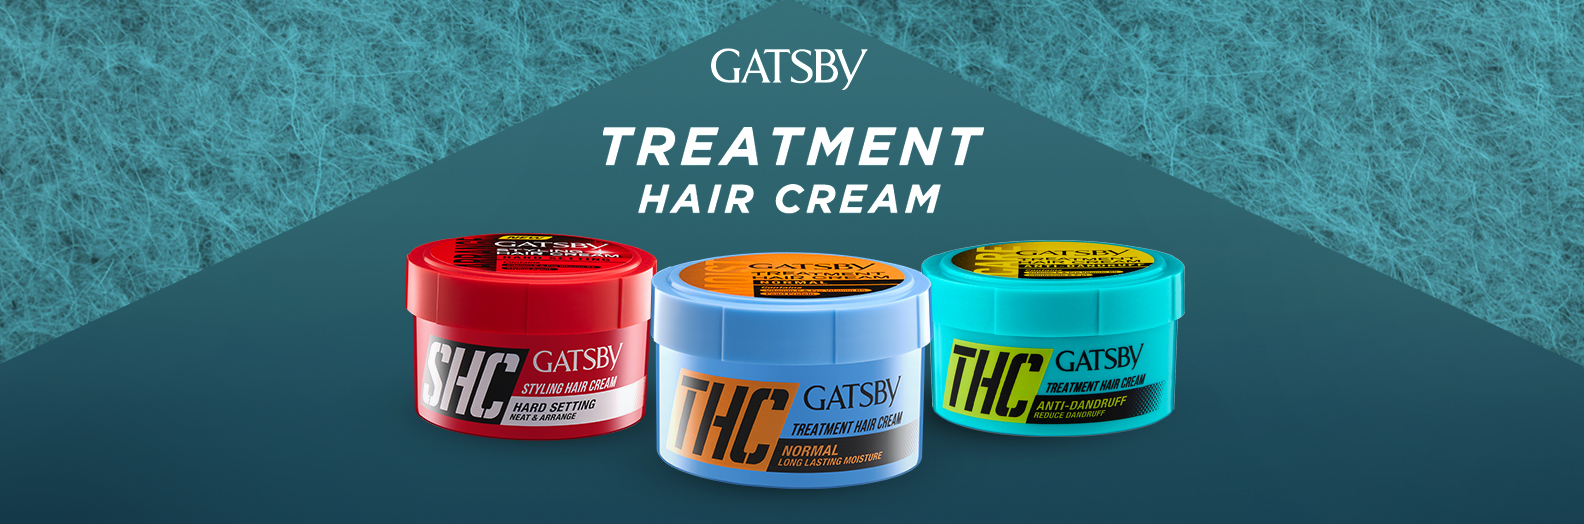 Treatment Hair Cream